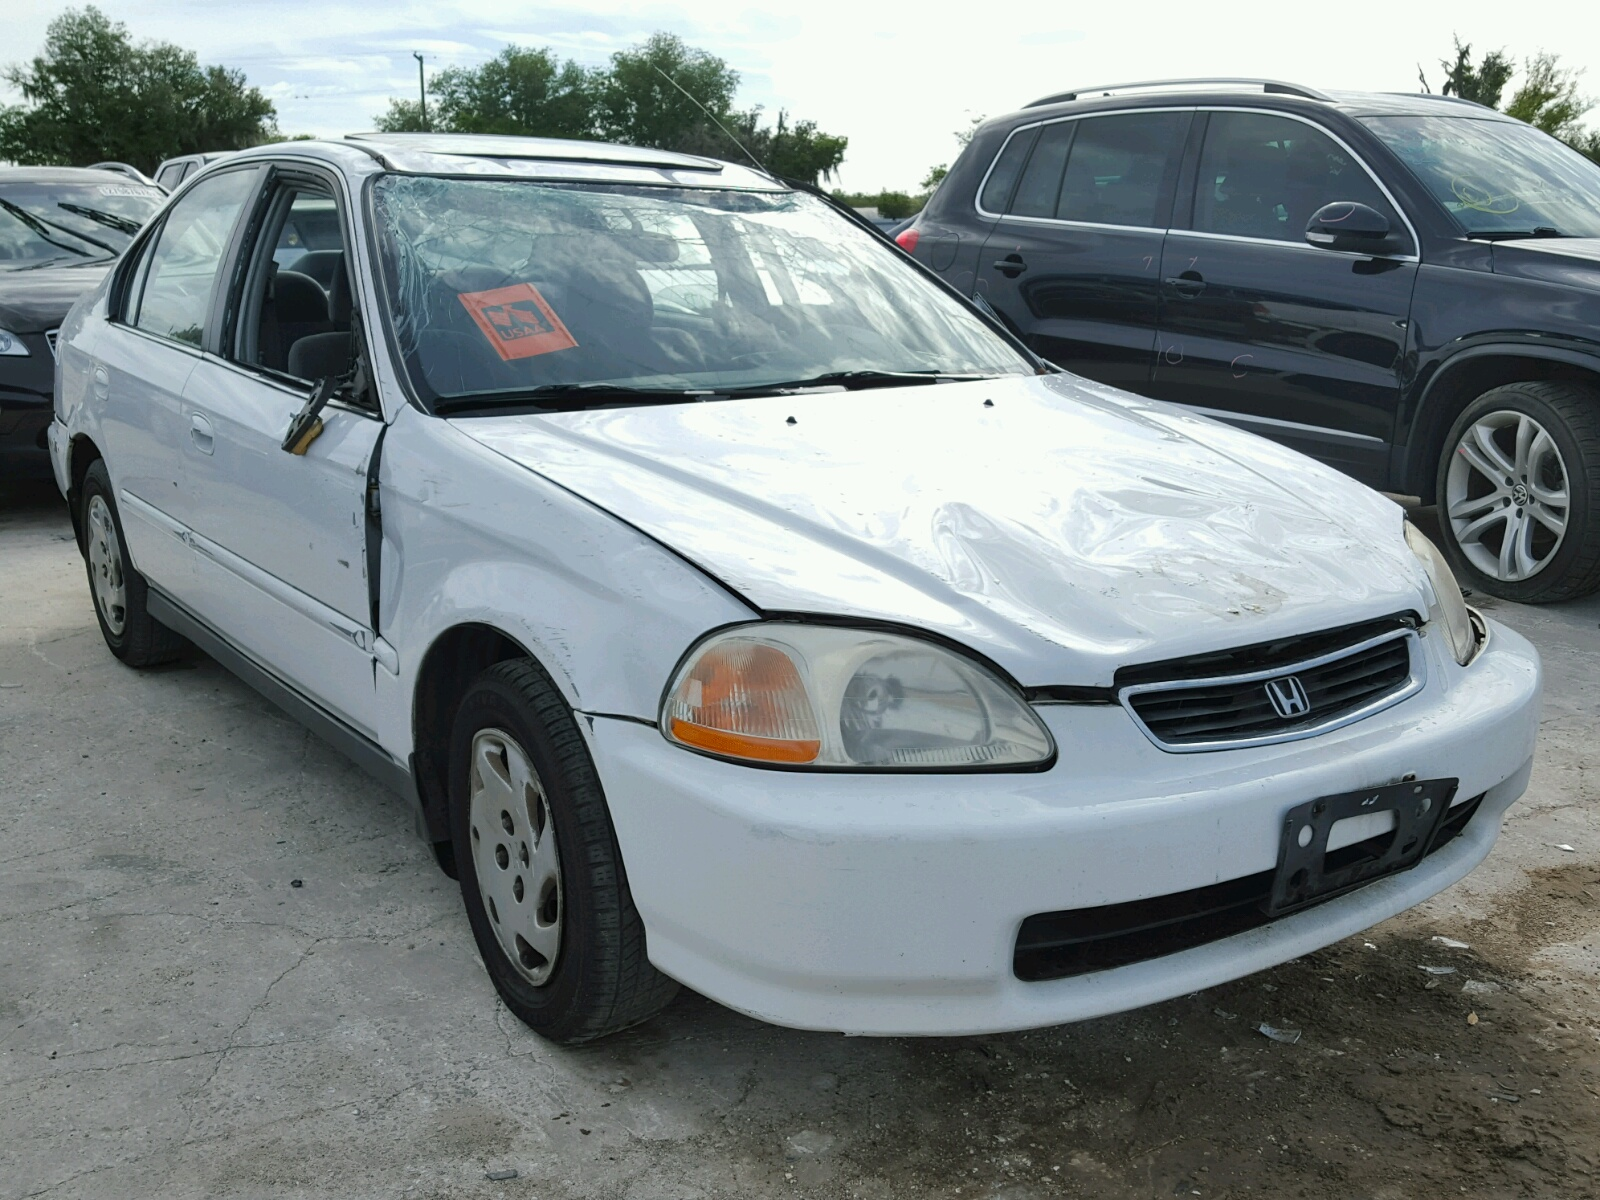 ... 1997 Honda Civic EX photo 2 ...